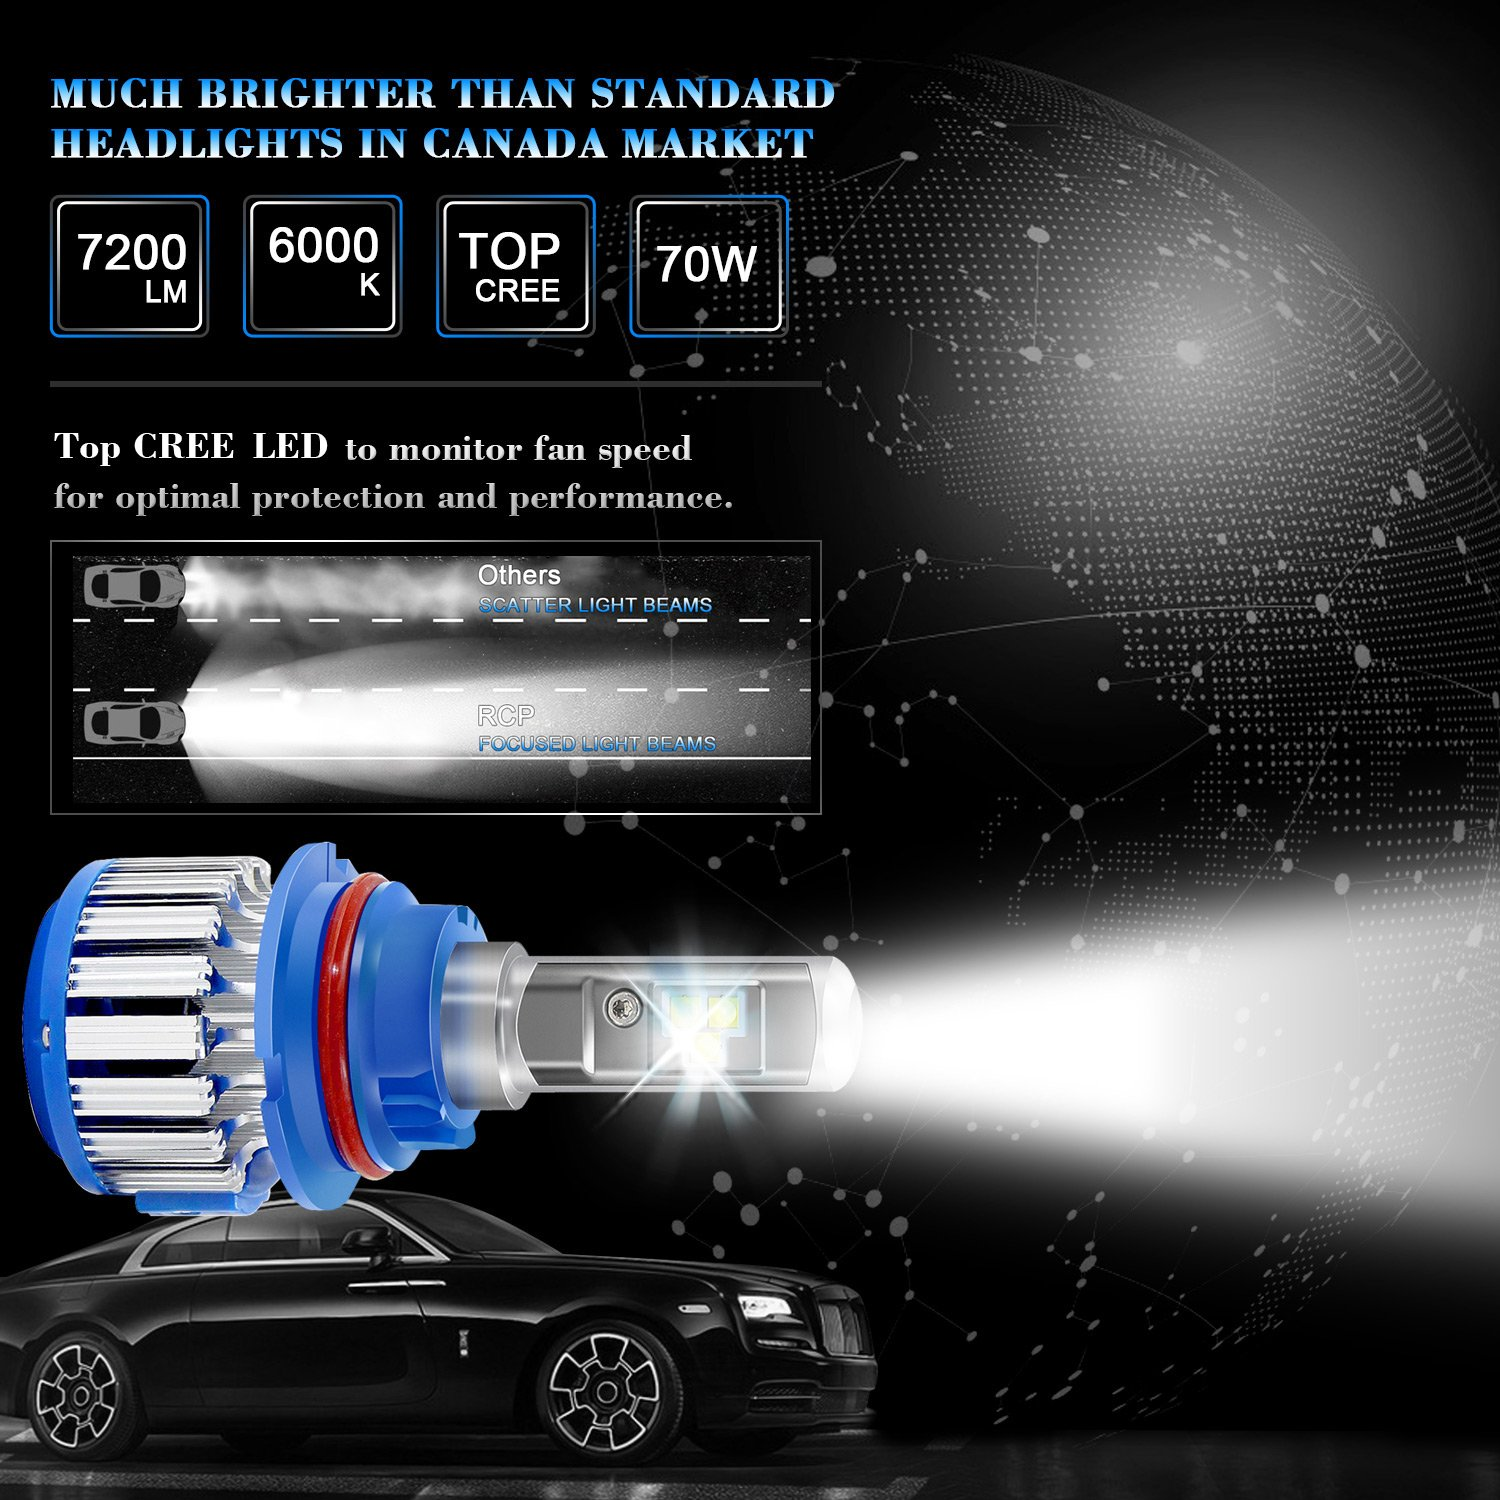 Rcp 9007hb5 Led Headlight Cree Bulbs Conversion Kits Built Great White Wiring Diagram In Canbus 80w 7200lm White6000k 2 Year Warranty Automotive